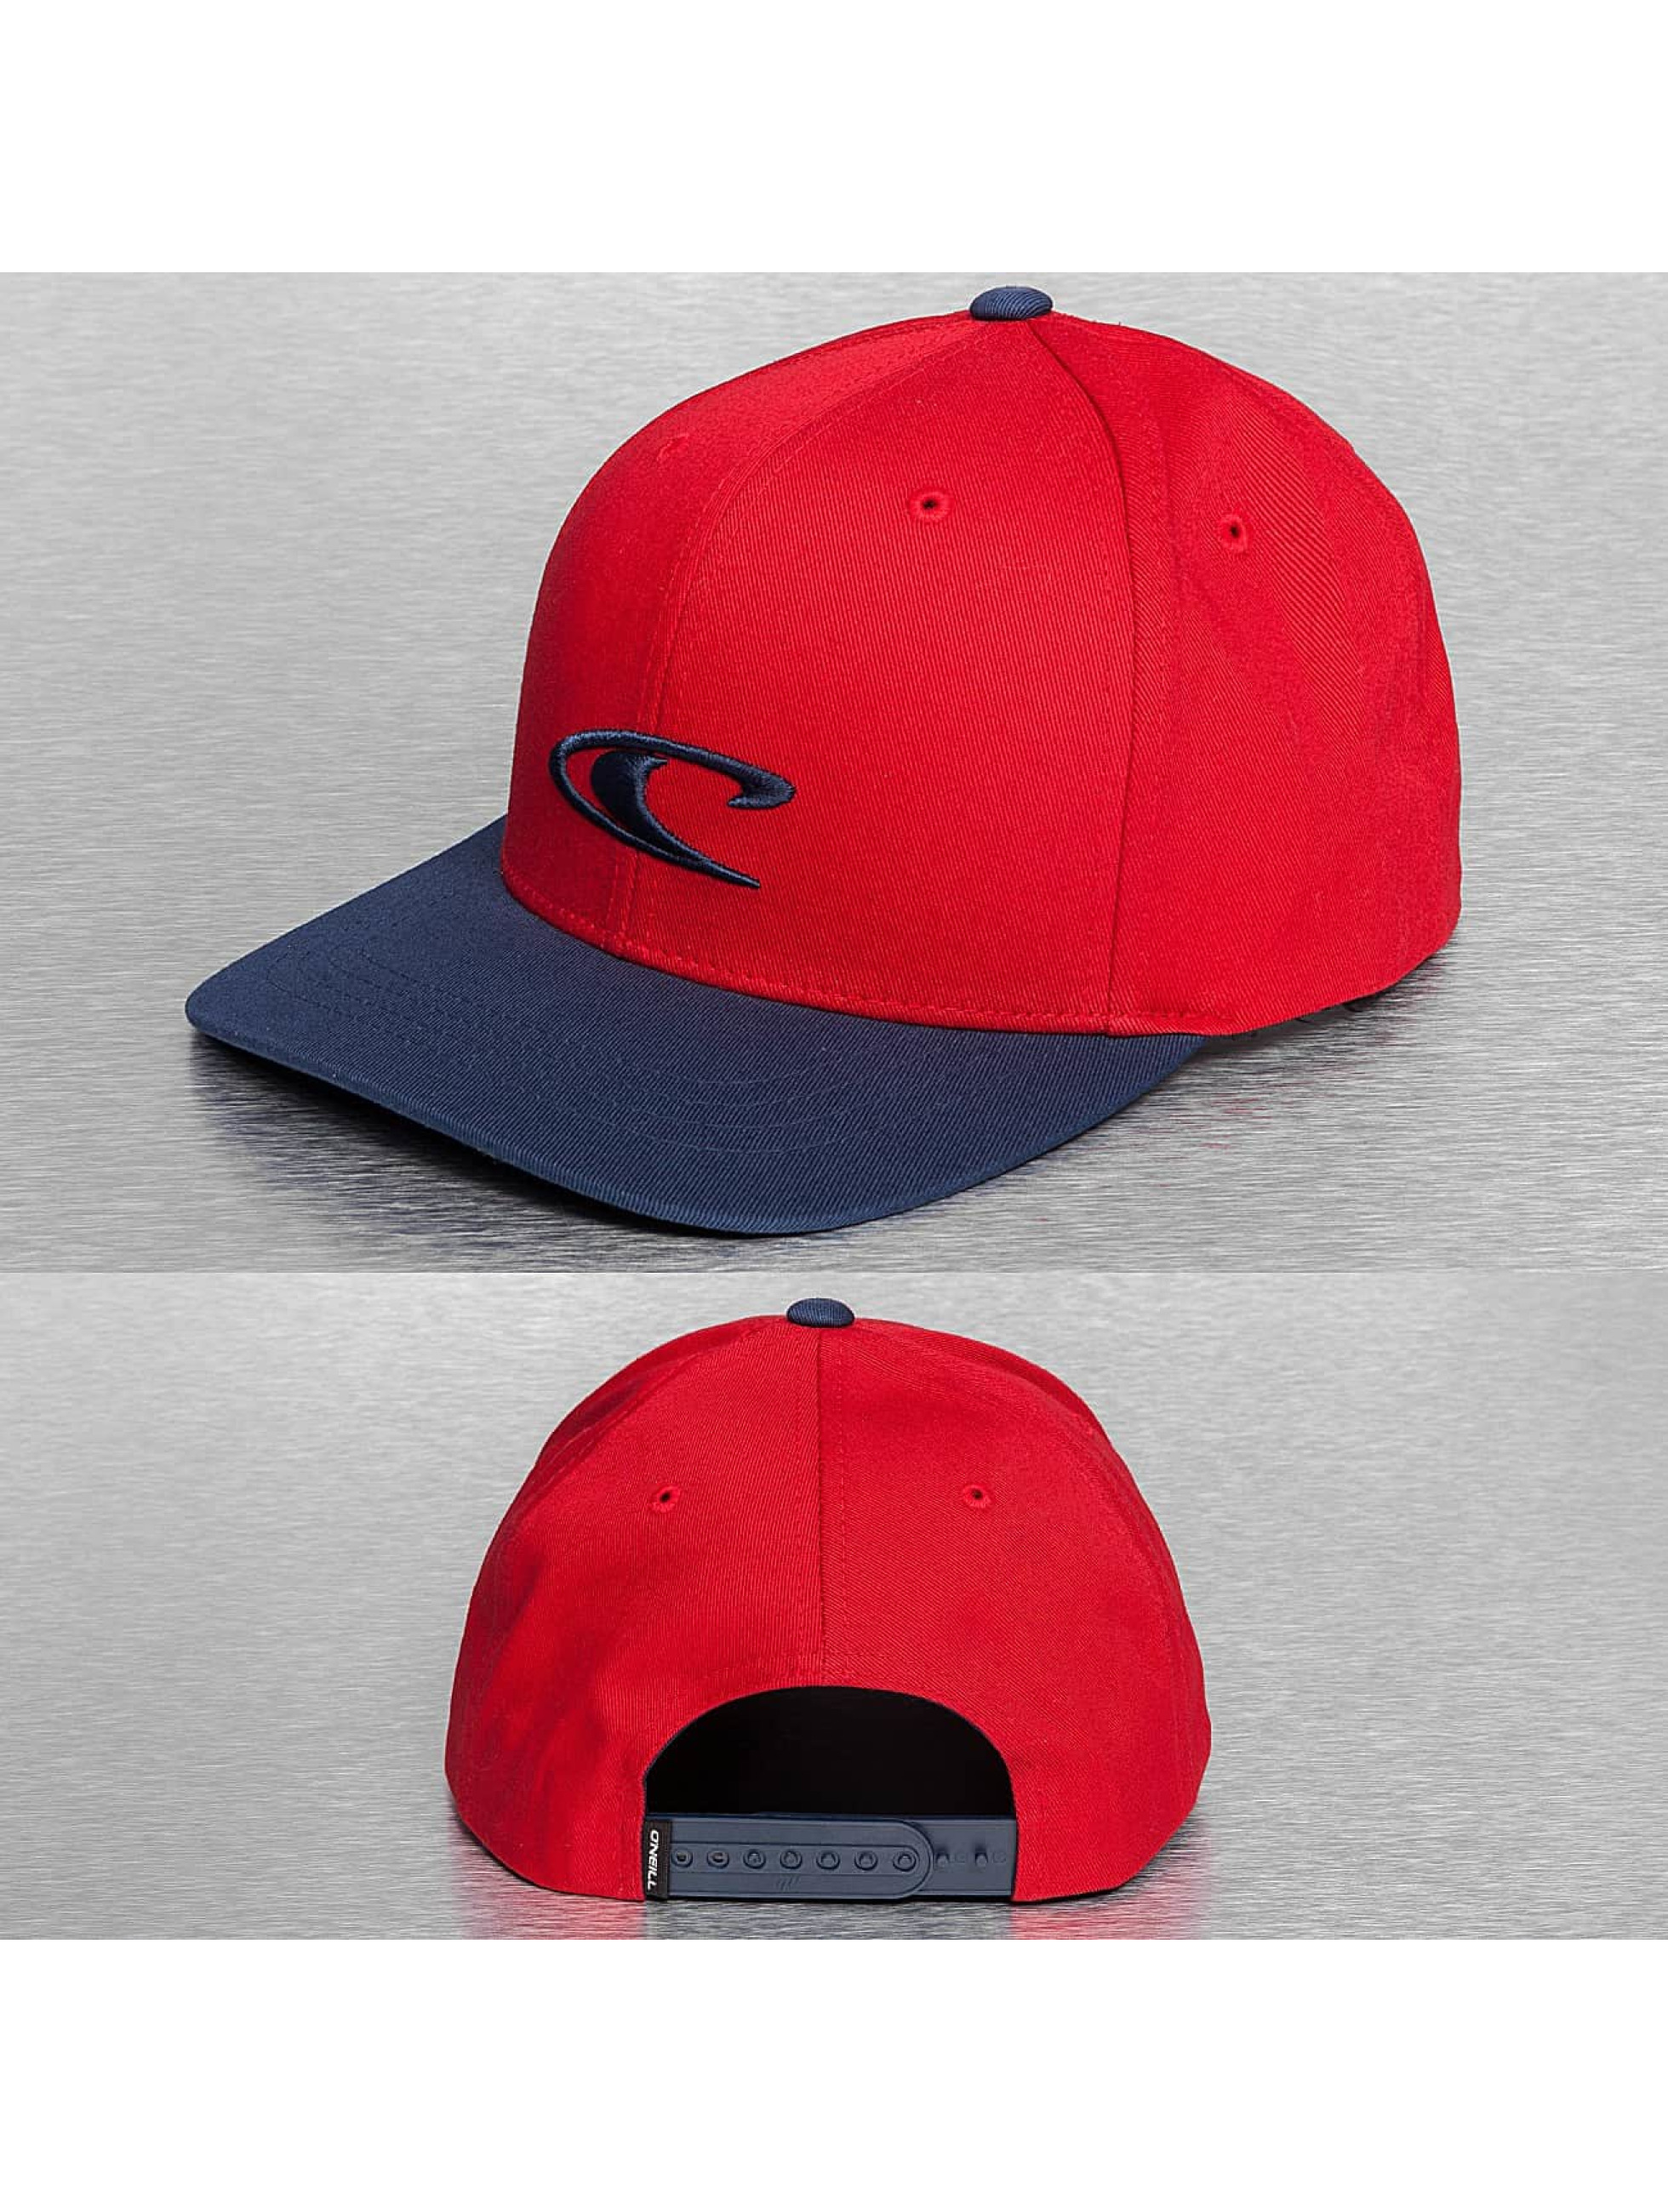 O'NEILL Casquette Snapback & Strapback Logo rouge